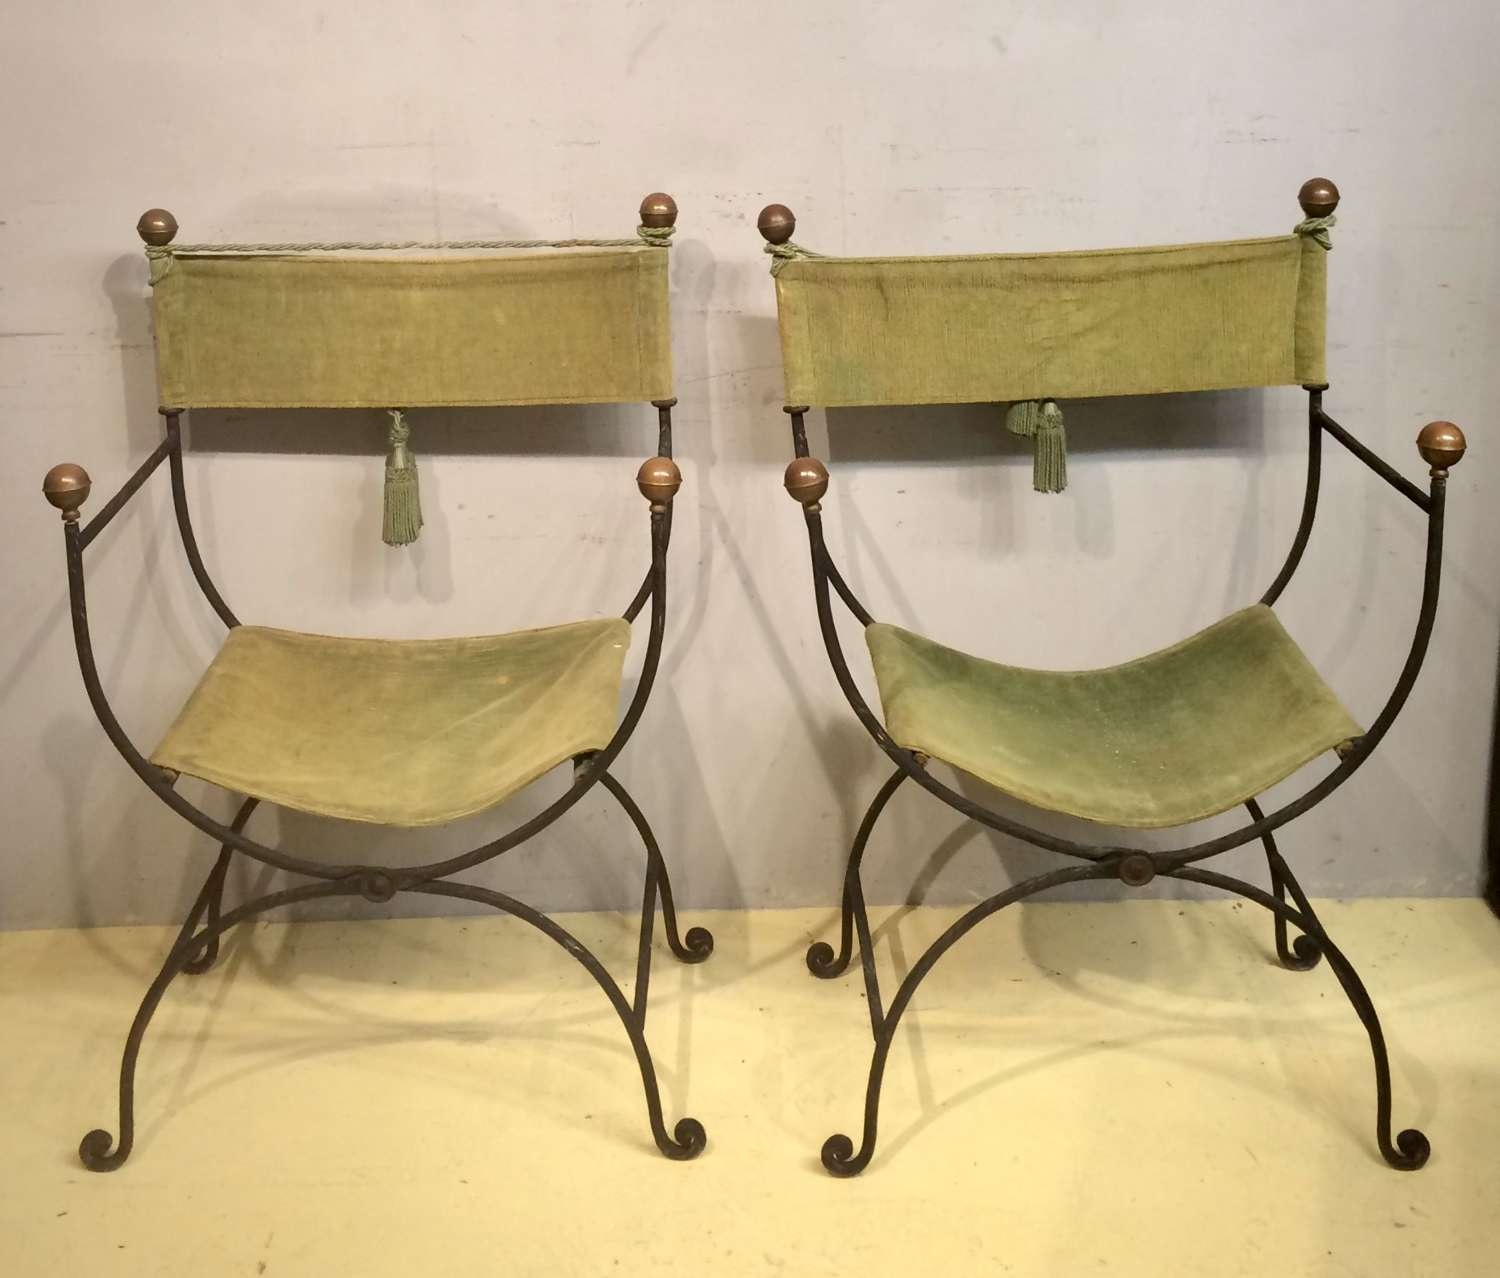 A pair of Spanish decorative iron folding chairs.